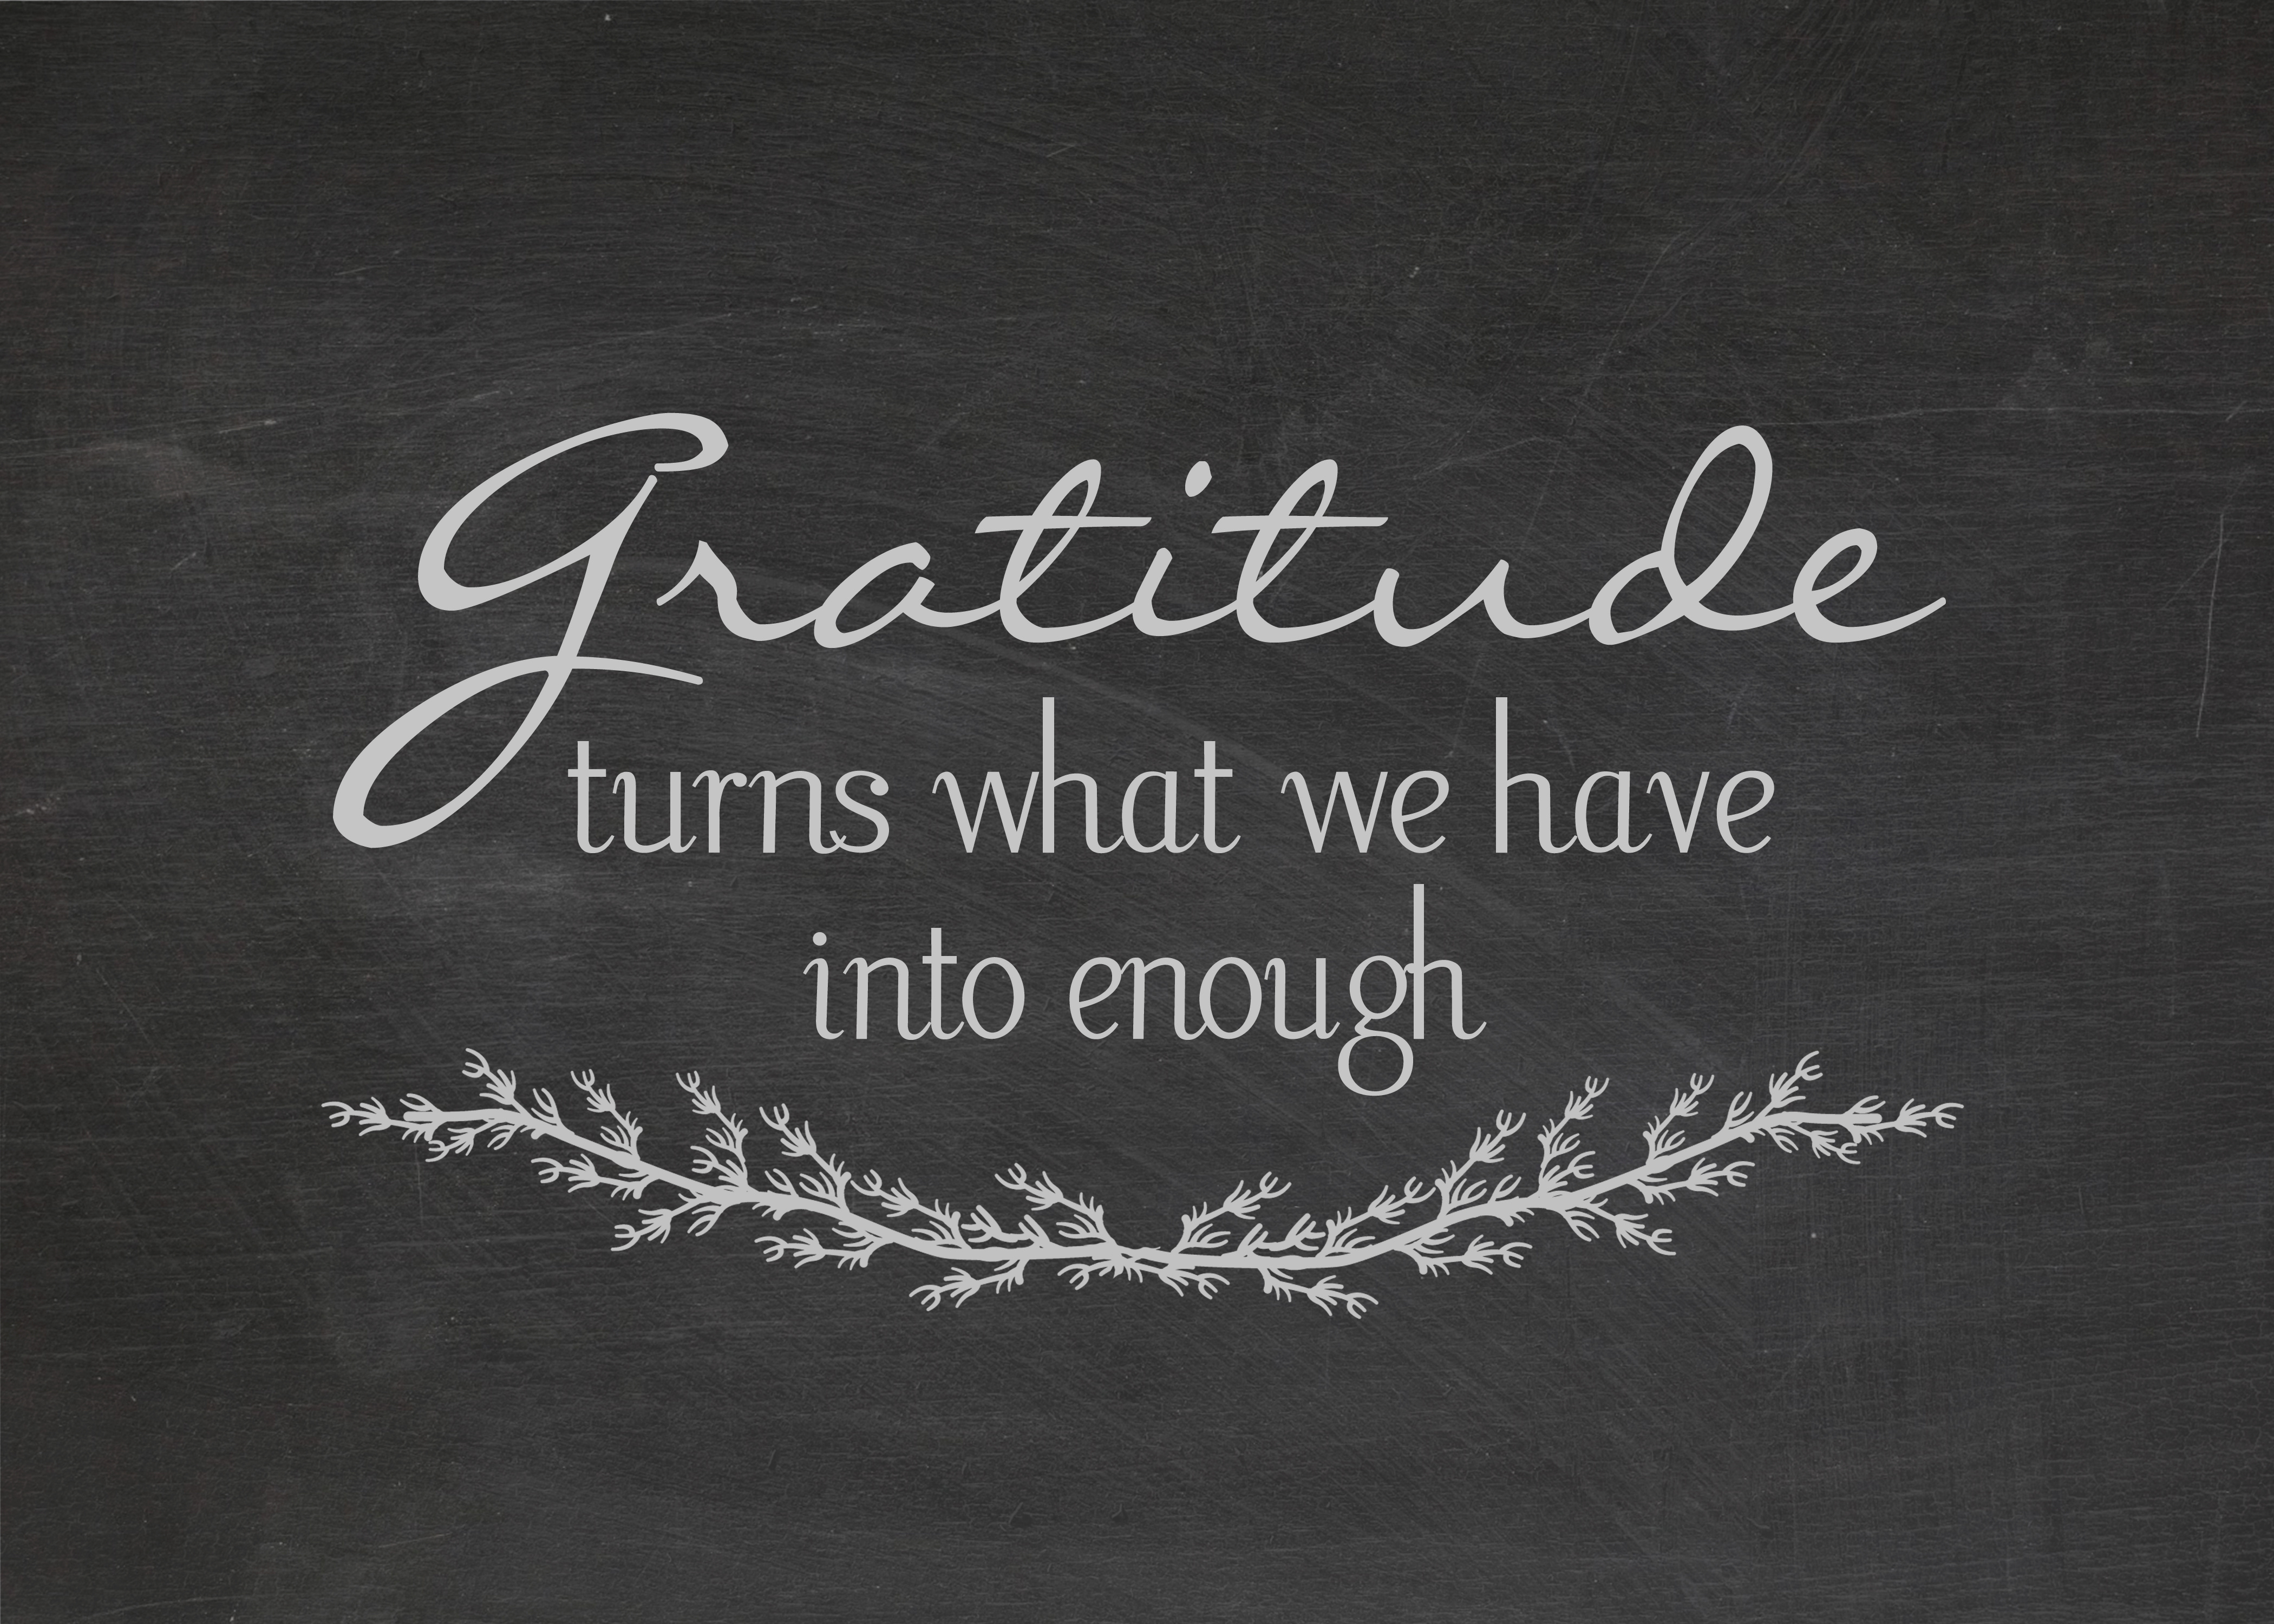 Gratitude, New perspective, giving thanks, life-changing shift, gratitude for everything even the small stuff